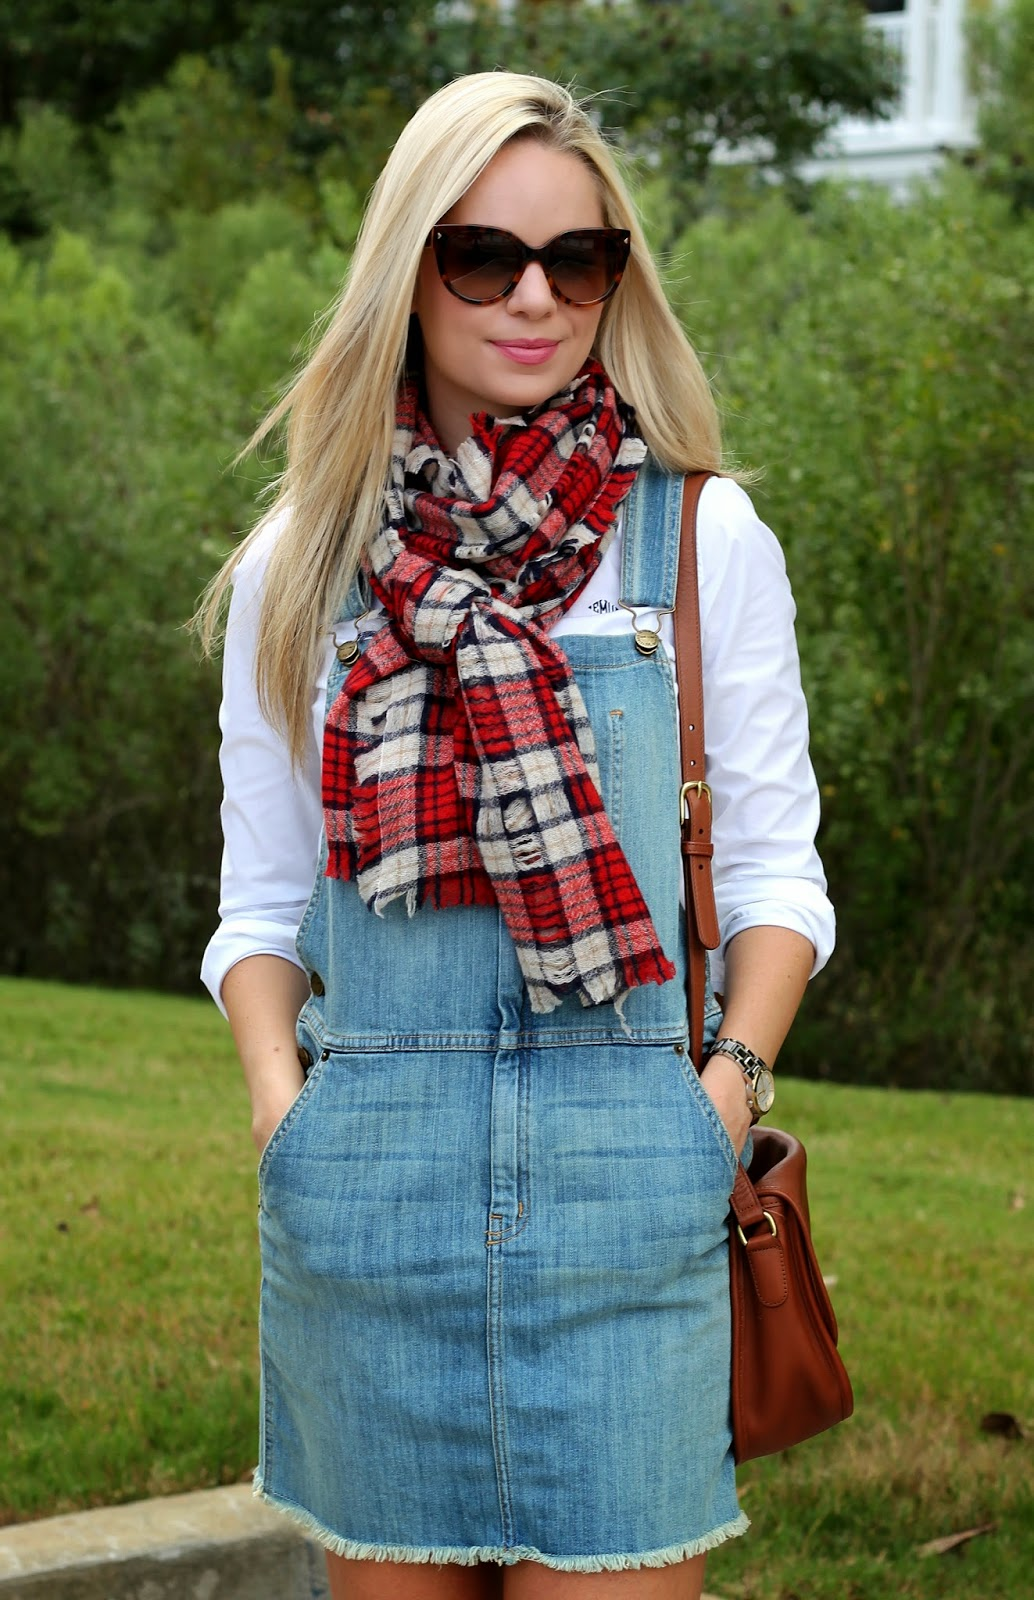 plaid scarf, plaid, brown bag, blonde, overalls, skirt